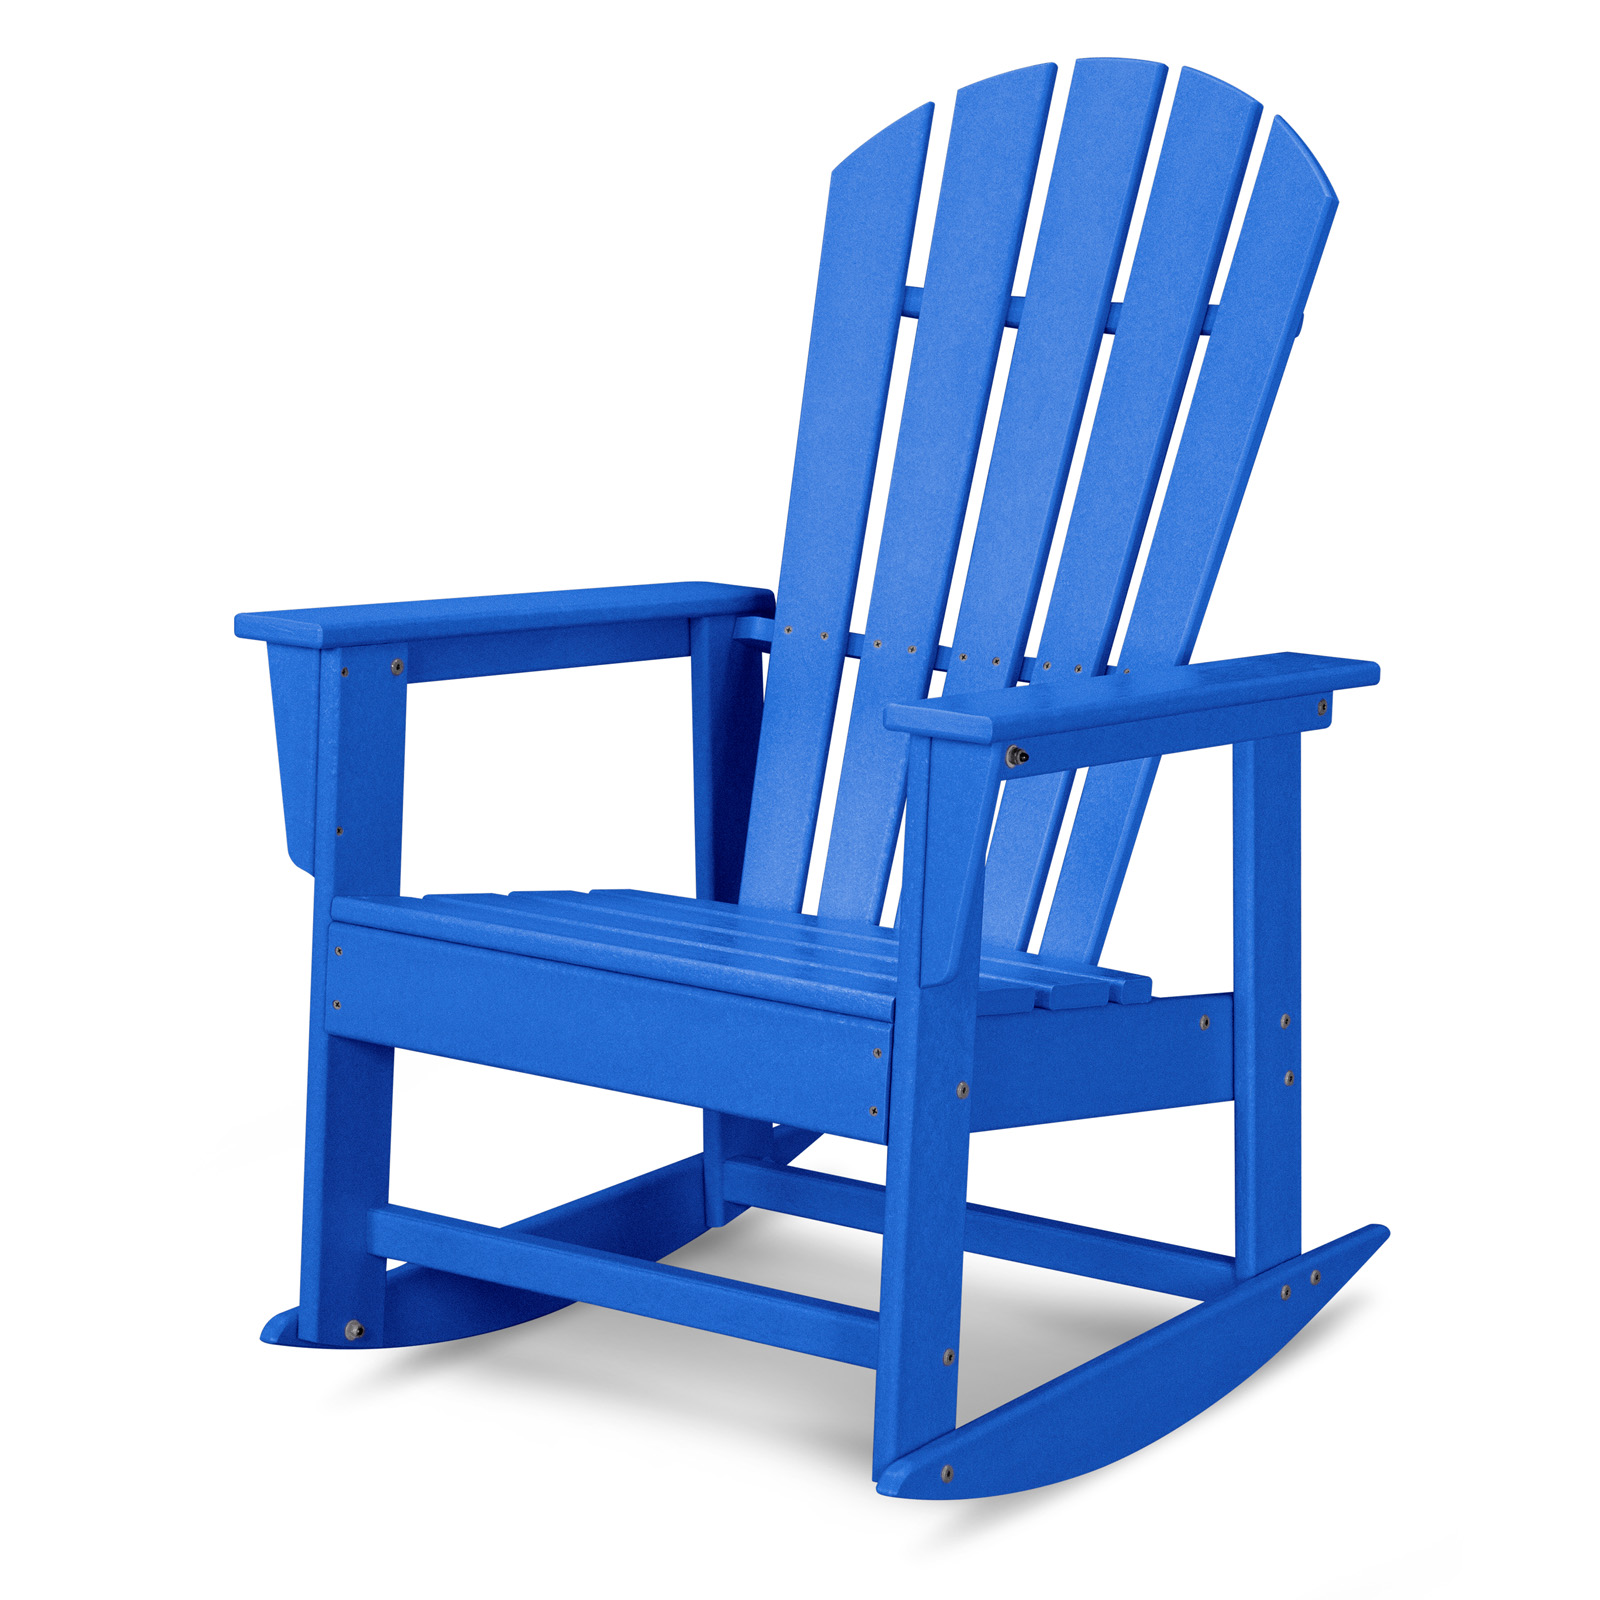 POLYWOOD® South Beach Recycled Plastic Adirondack Rocking Chair | Hayneedle